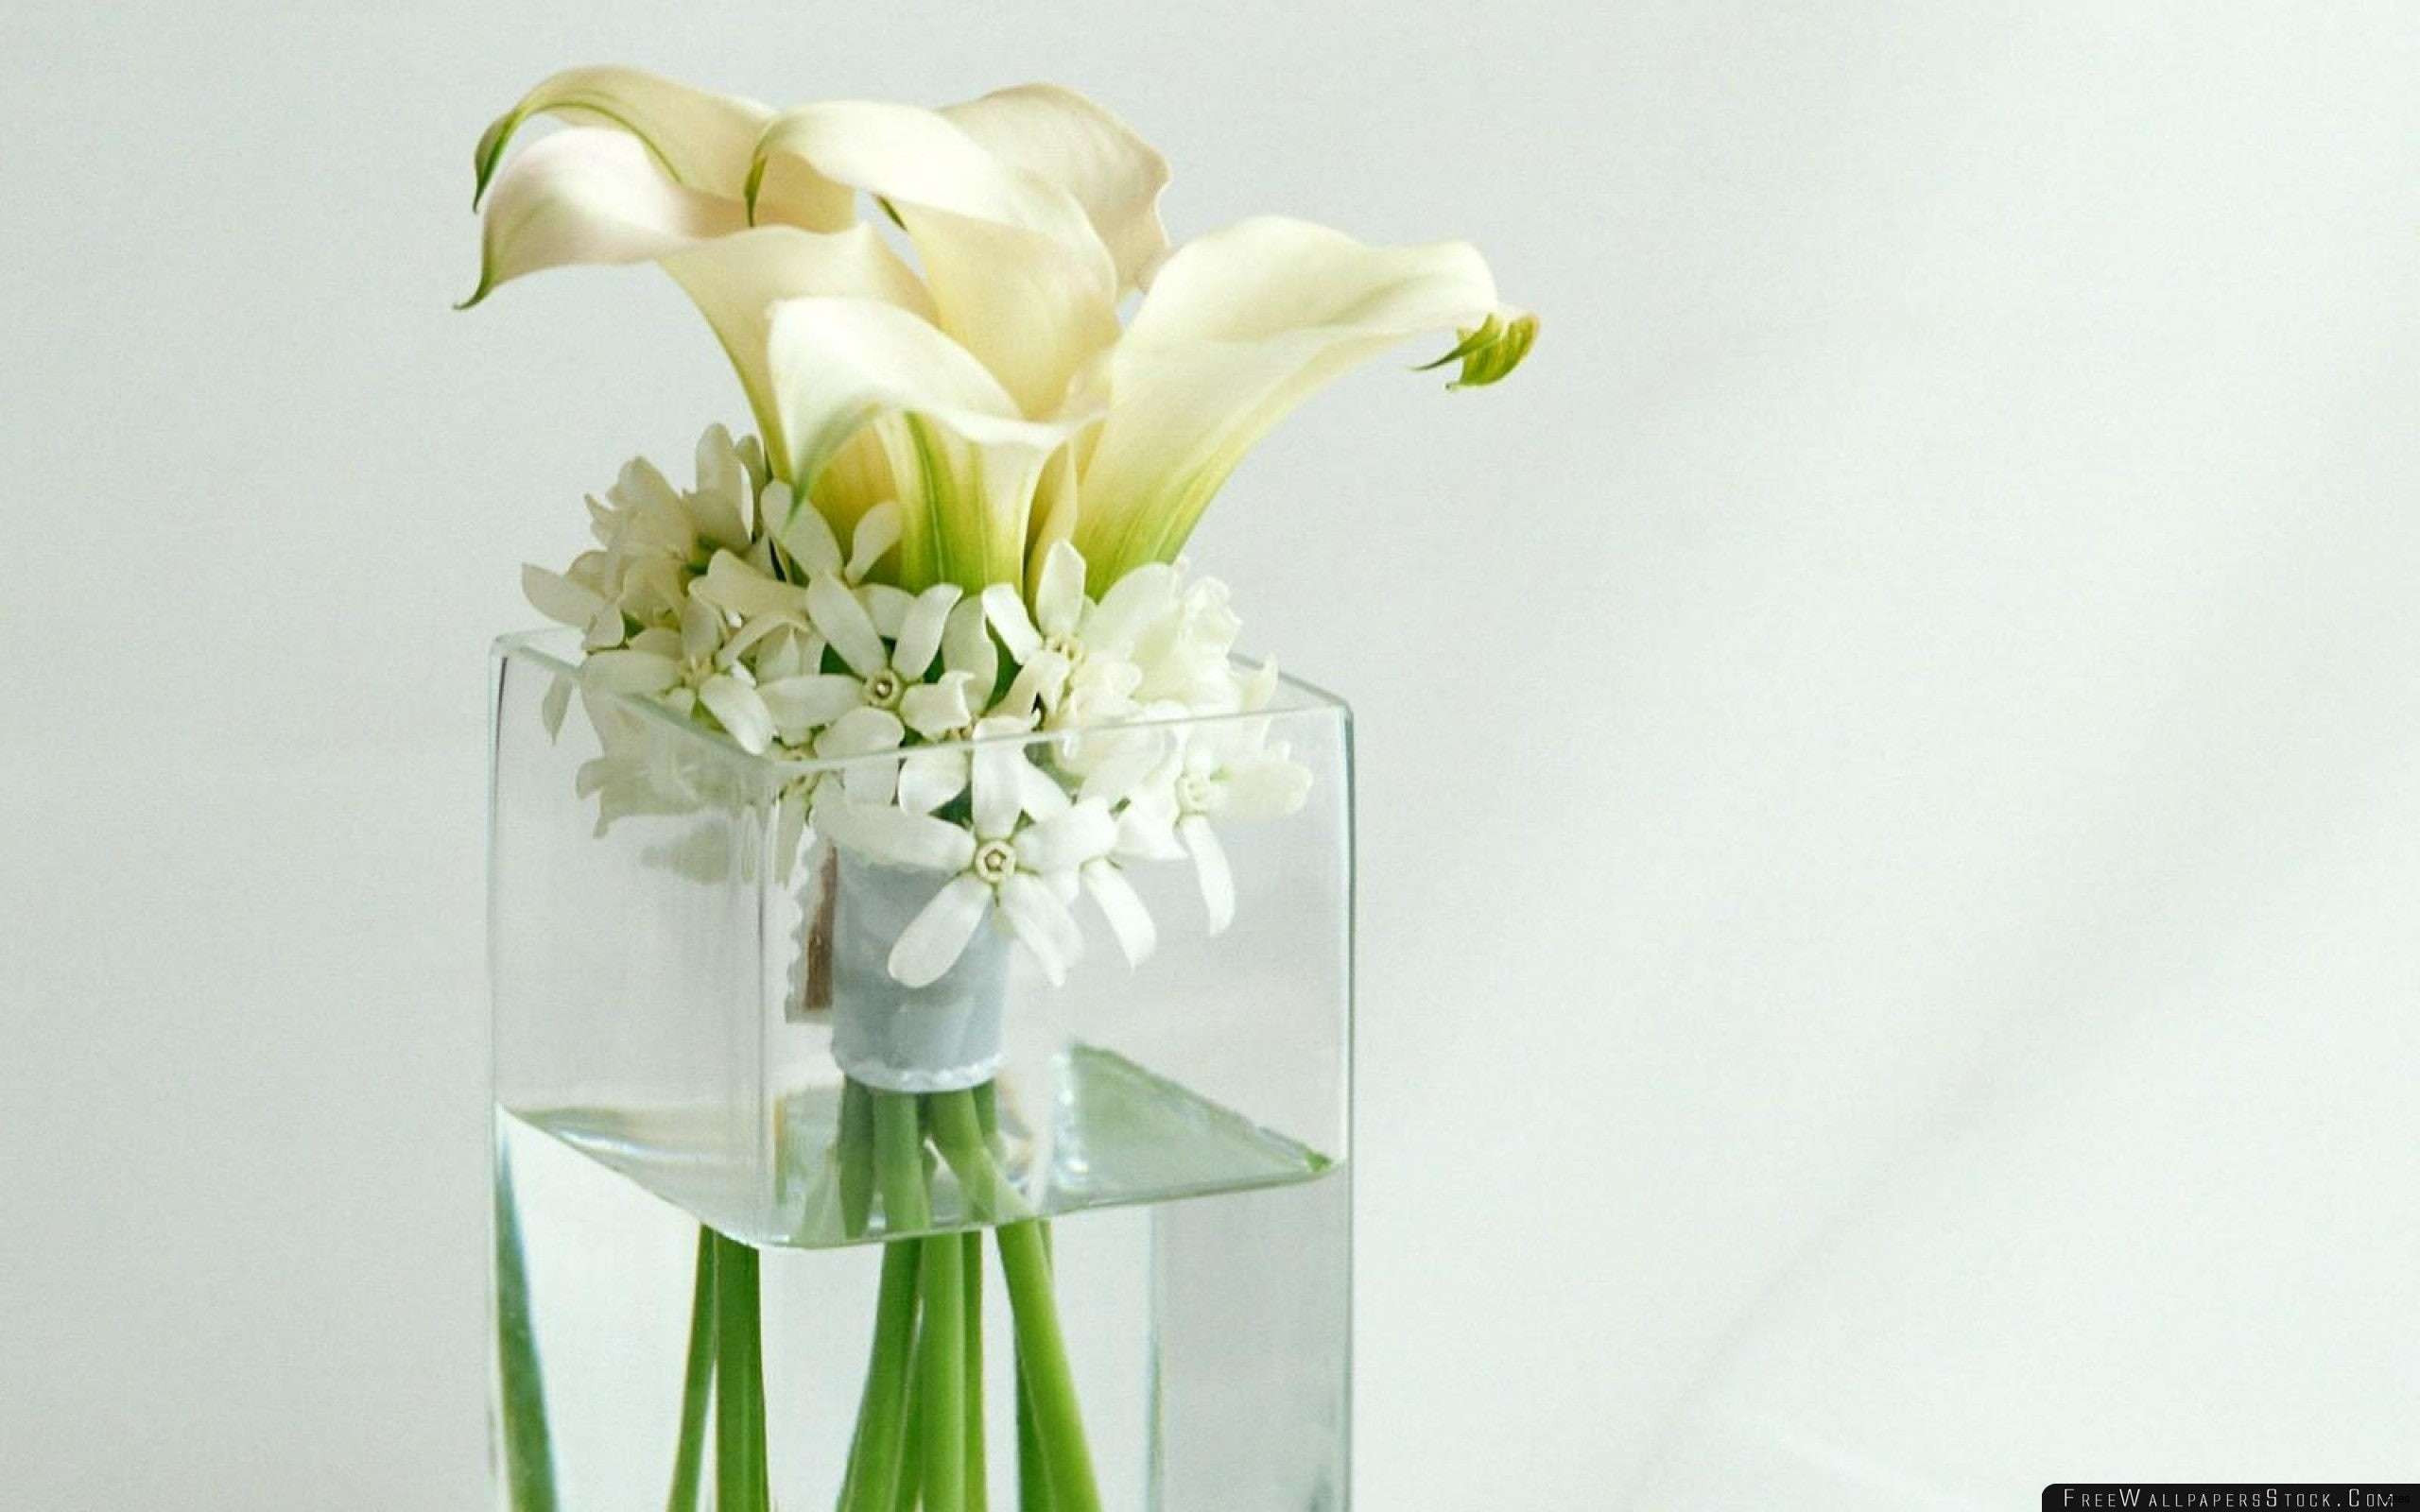 27 Fashionable Floor Vase Fillers